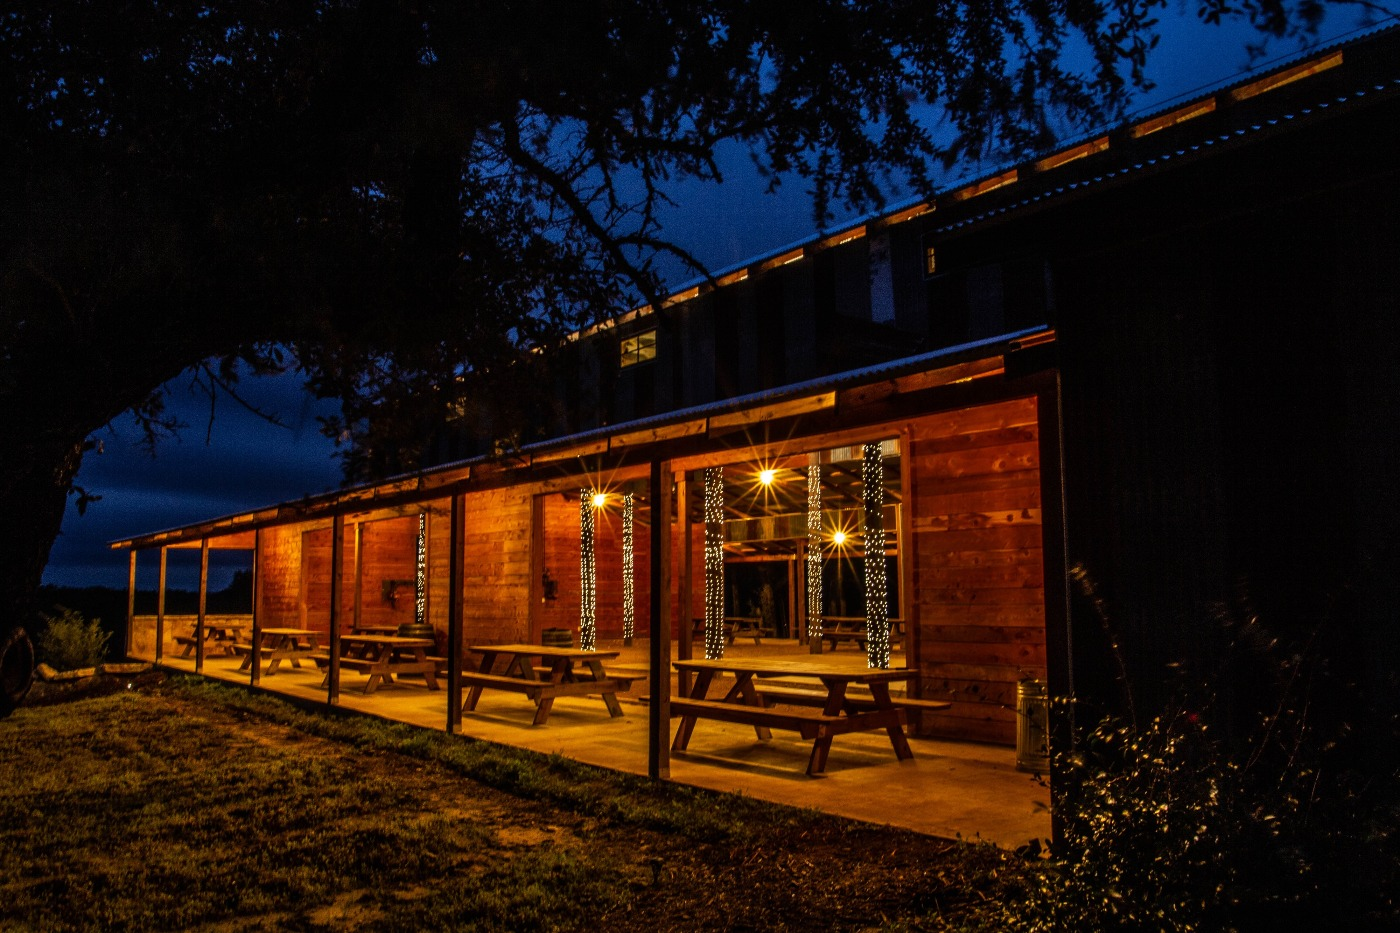 event center night full clarity.jpg